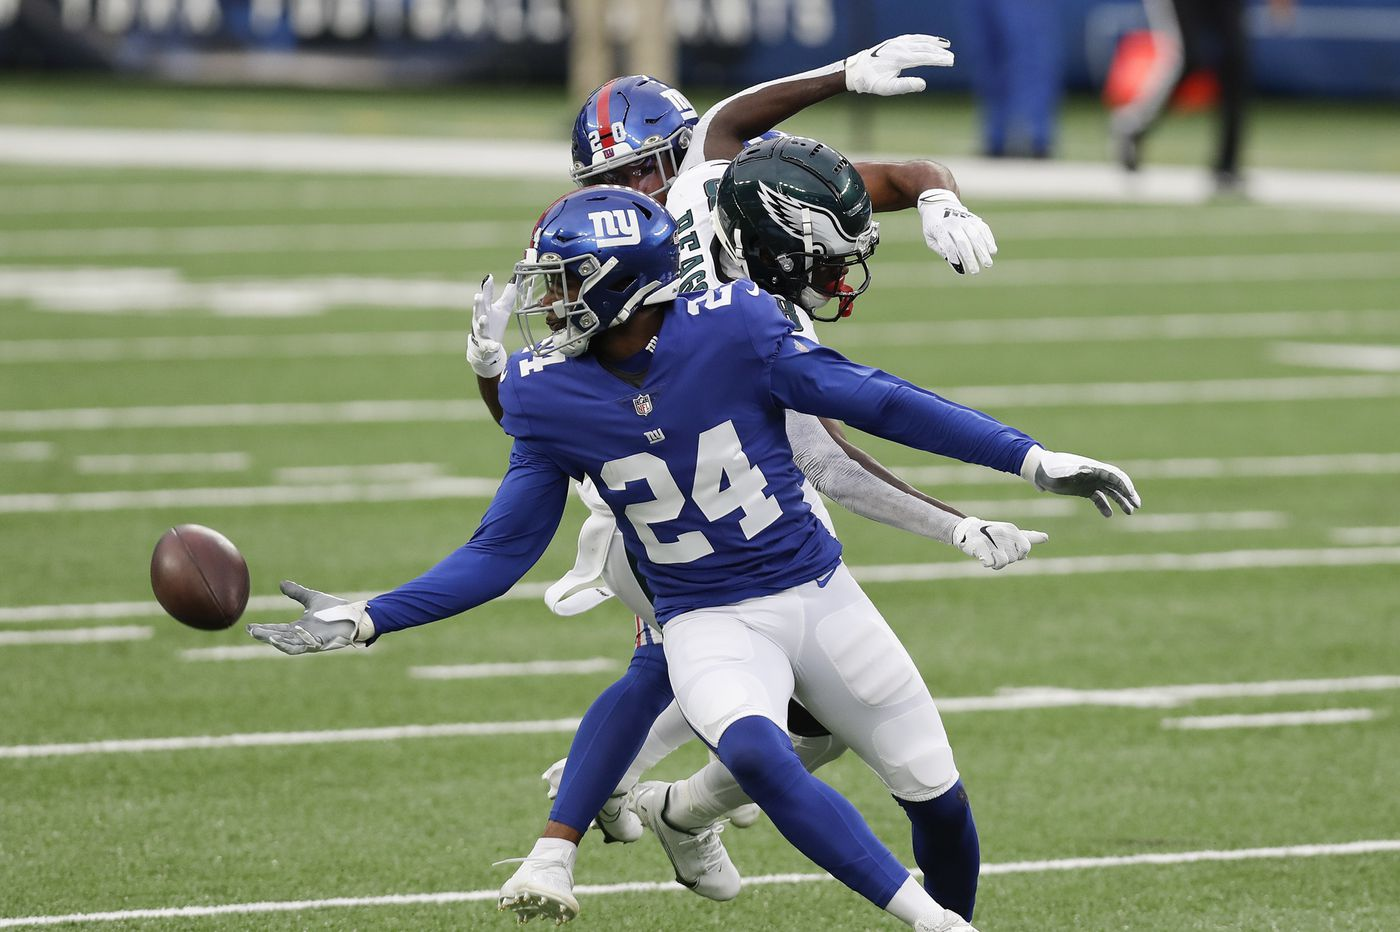 Eagles' special-teams coordinator on return issues vs. Giants: 'We've gotta catch the football'